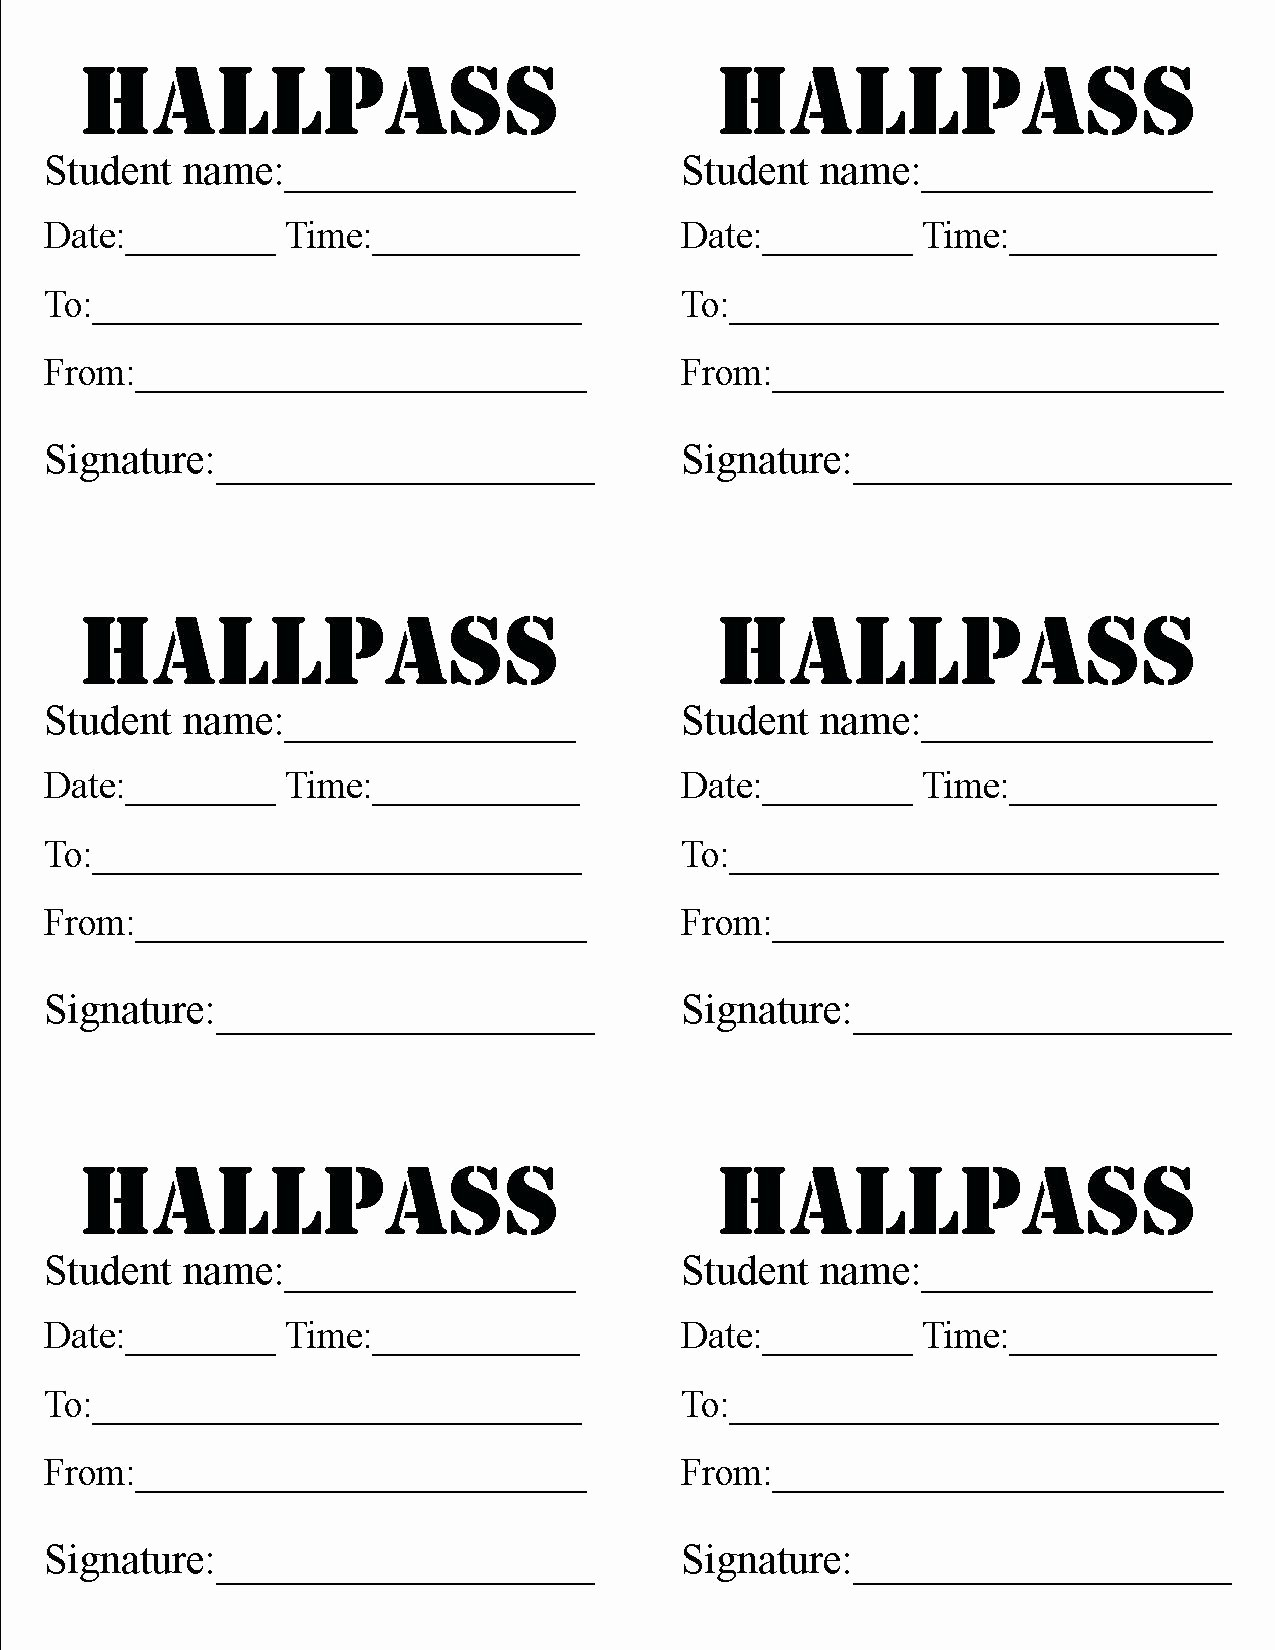 Printable Hall Passes for Students New Printable Printable Hall Passes for Teachers